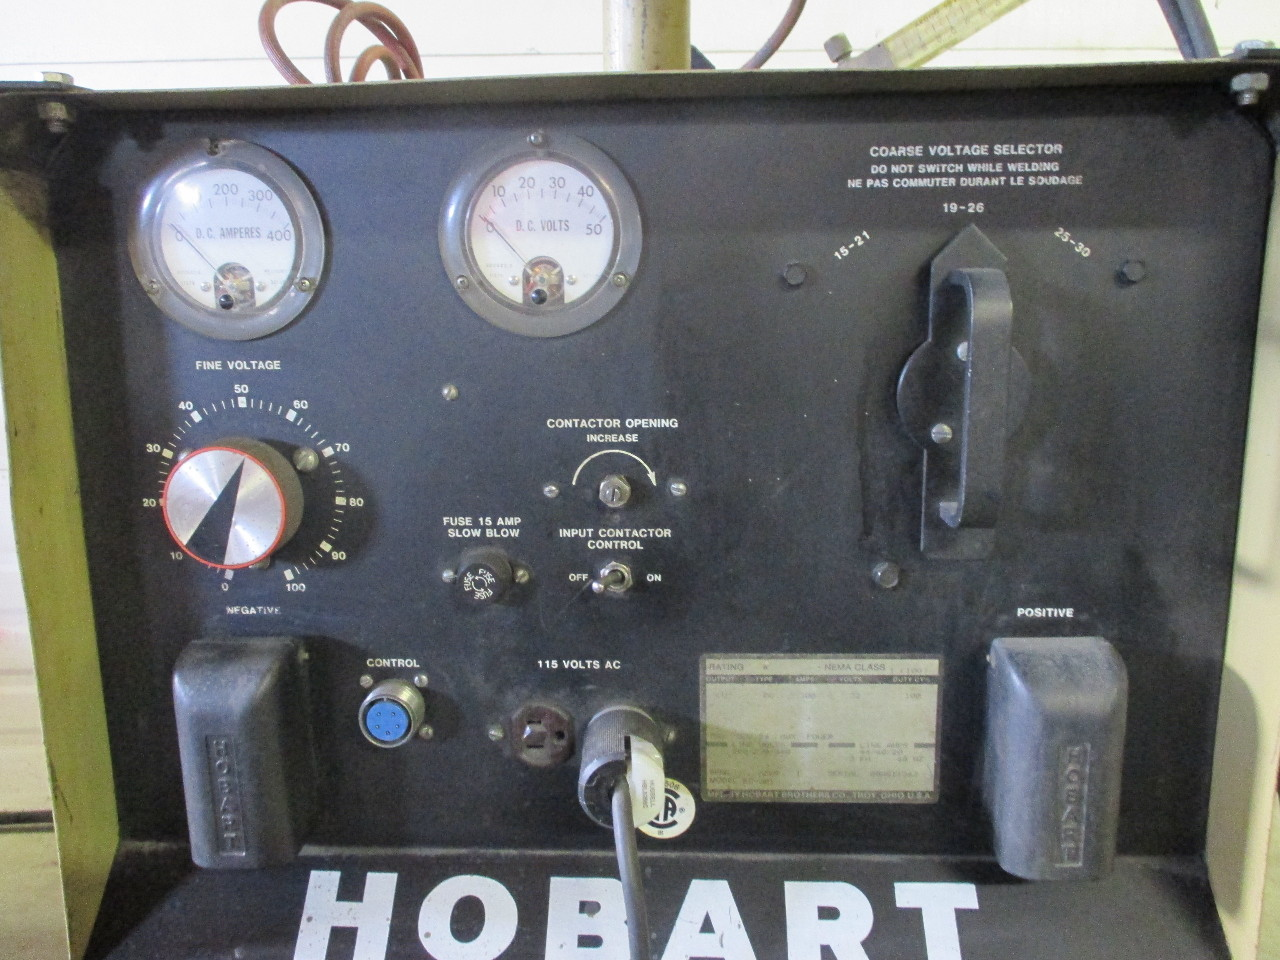 Hobart 200 Switch Diagram Detailed Schematics Wiring Diagrams Explained Jacks Automotive